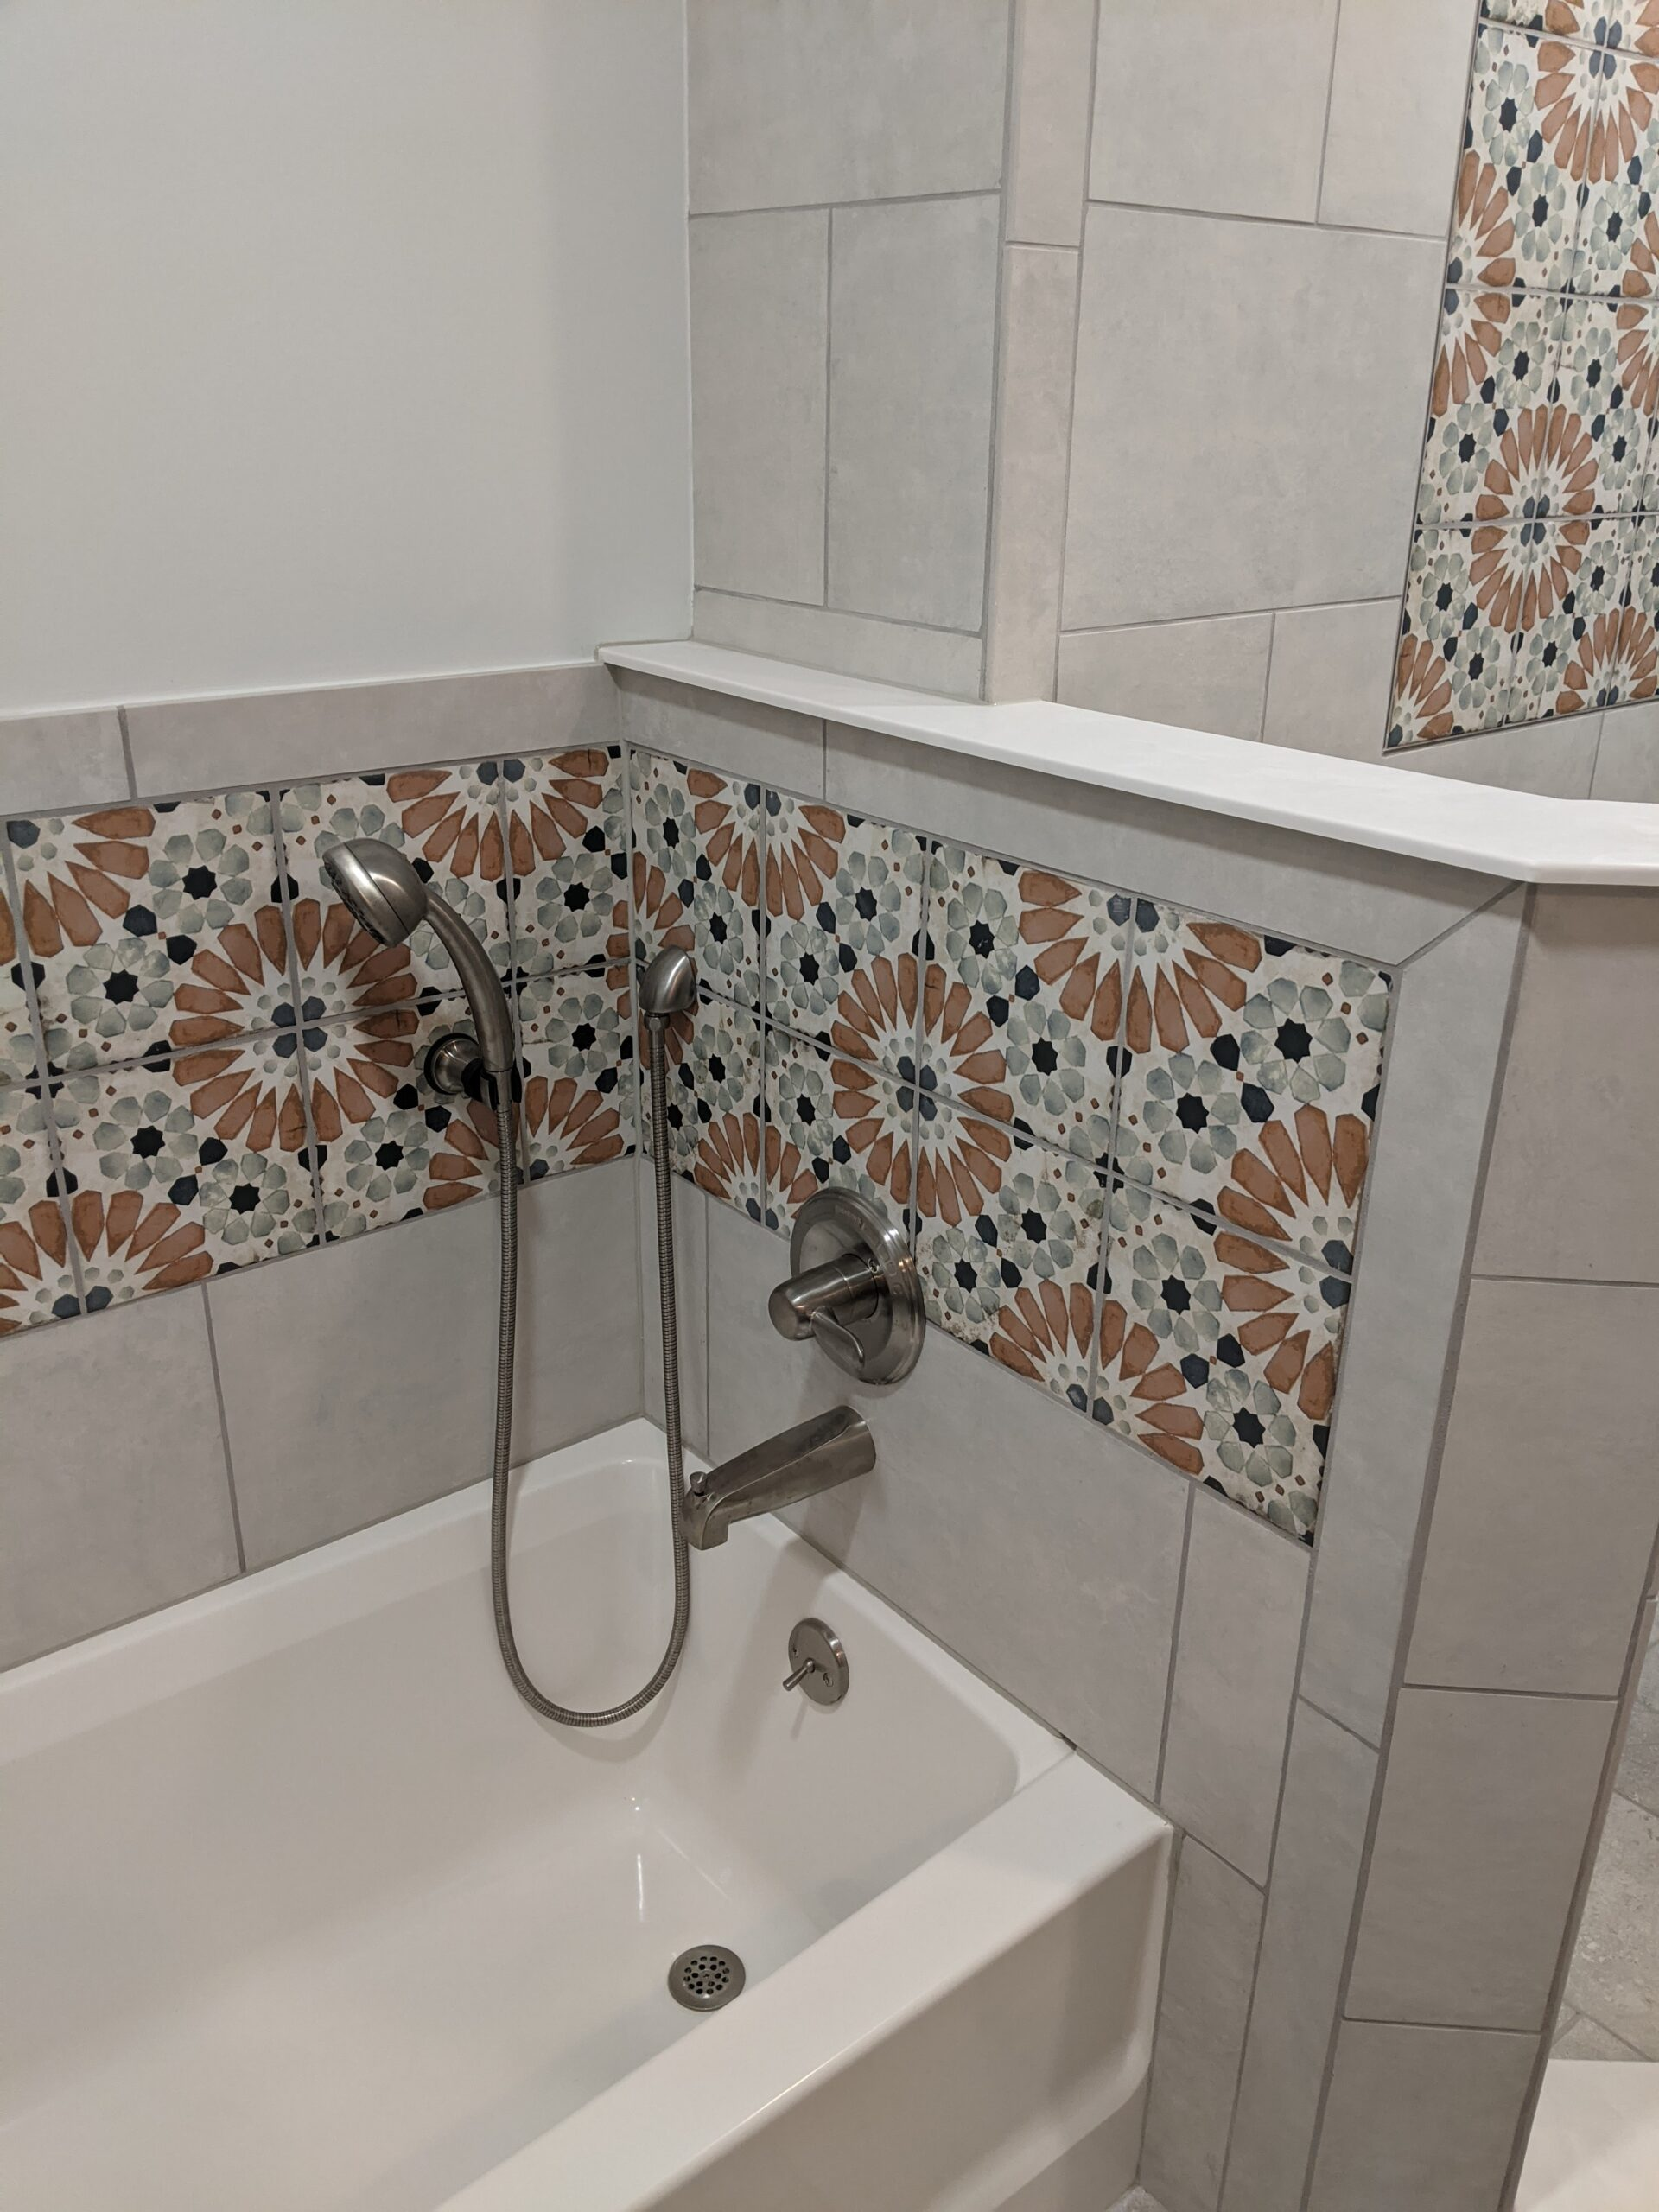 The tub area is now a standard tub with tile and decorative tile surrounding it with a hand held and new fixtures.